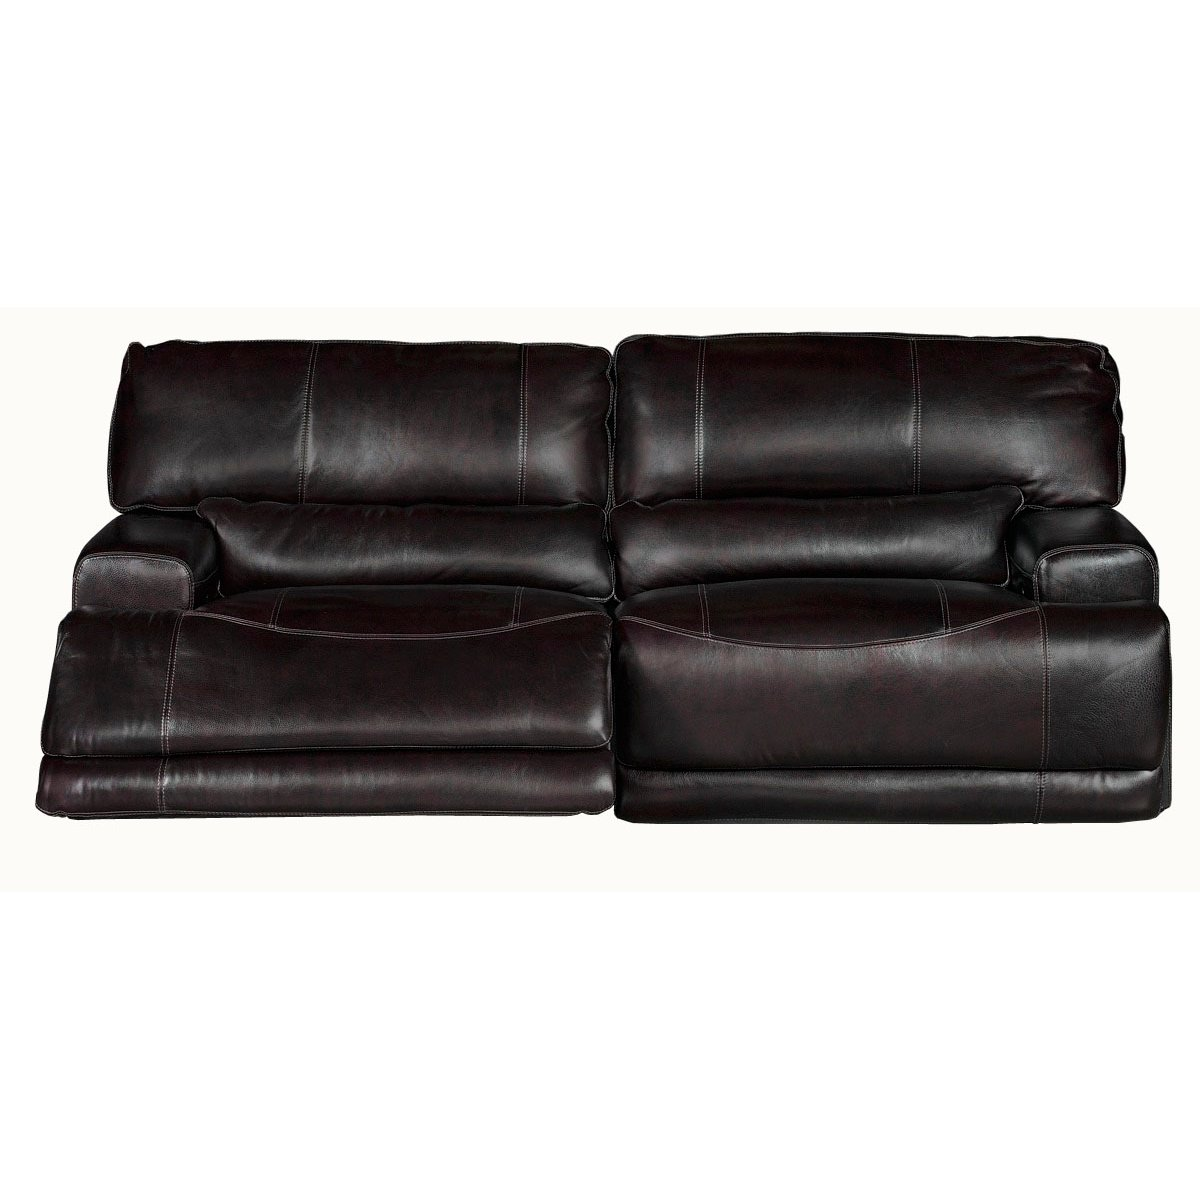 Sofa Bed Express Delivery Shop Leather Sofas Living Room Furniture Store Rc Willey